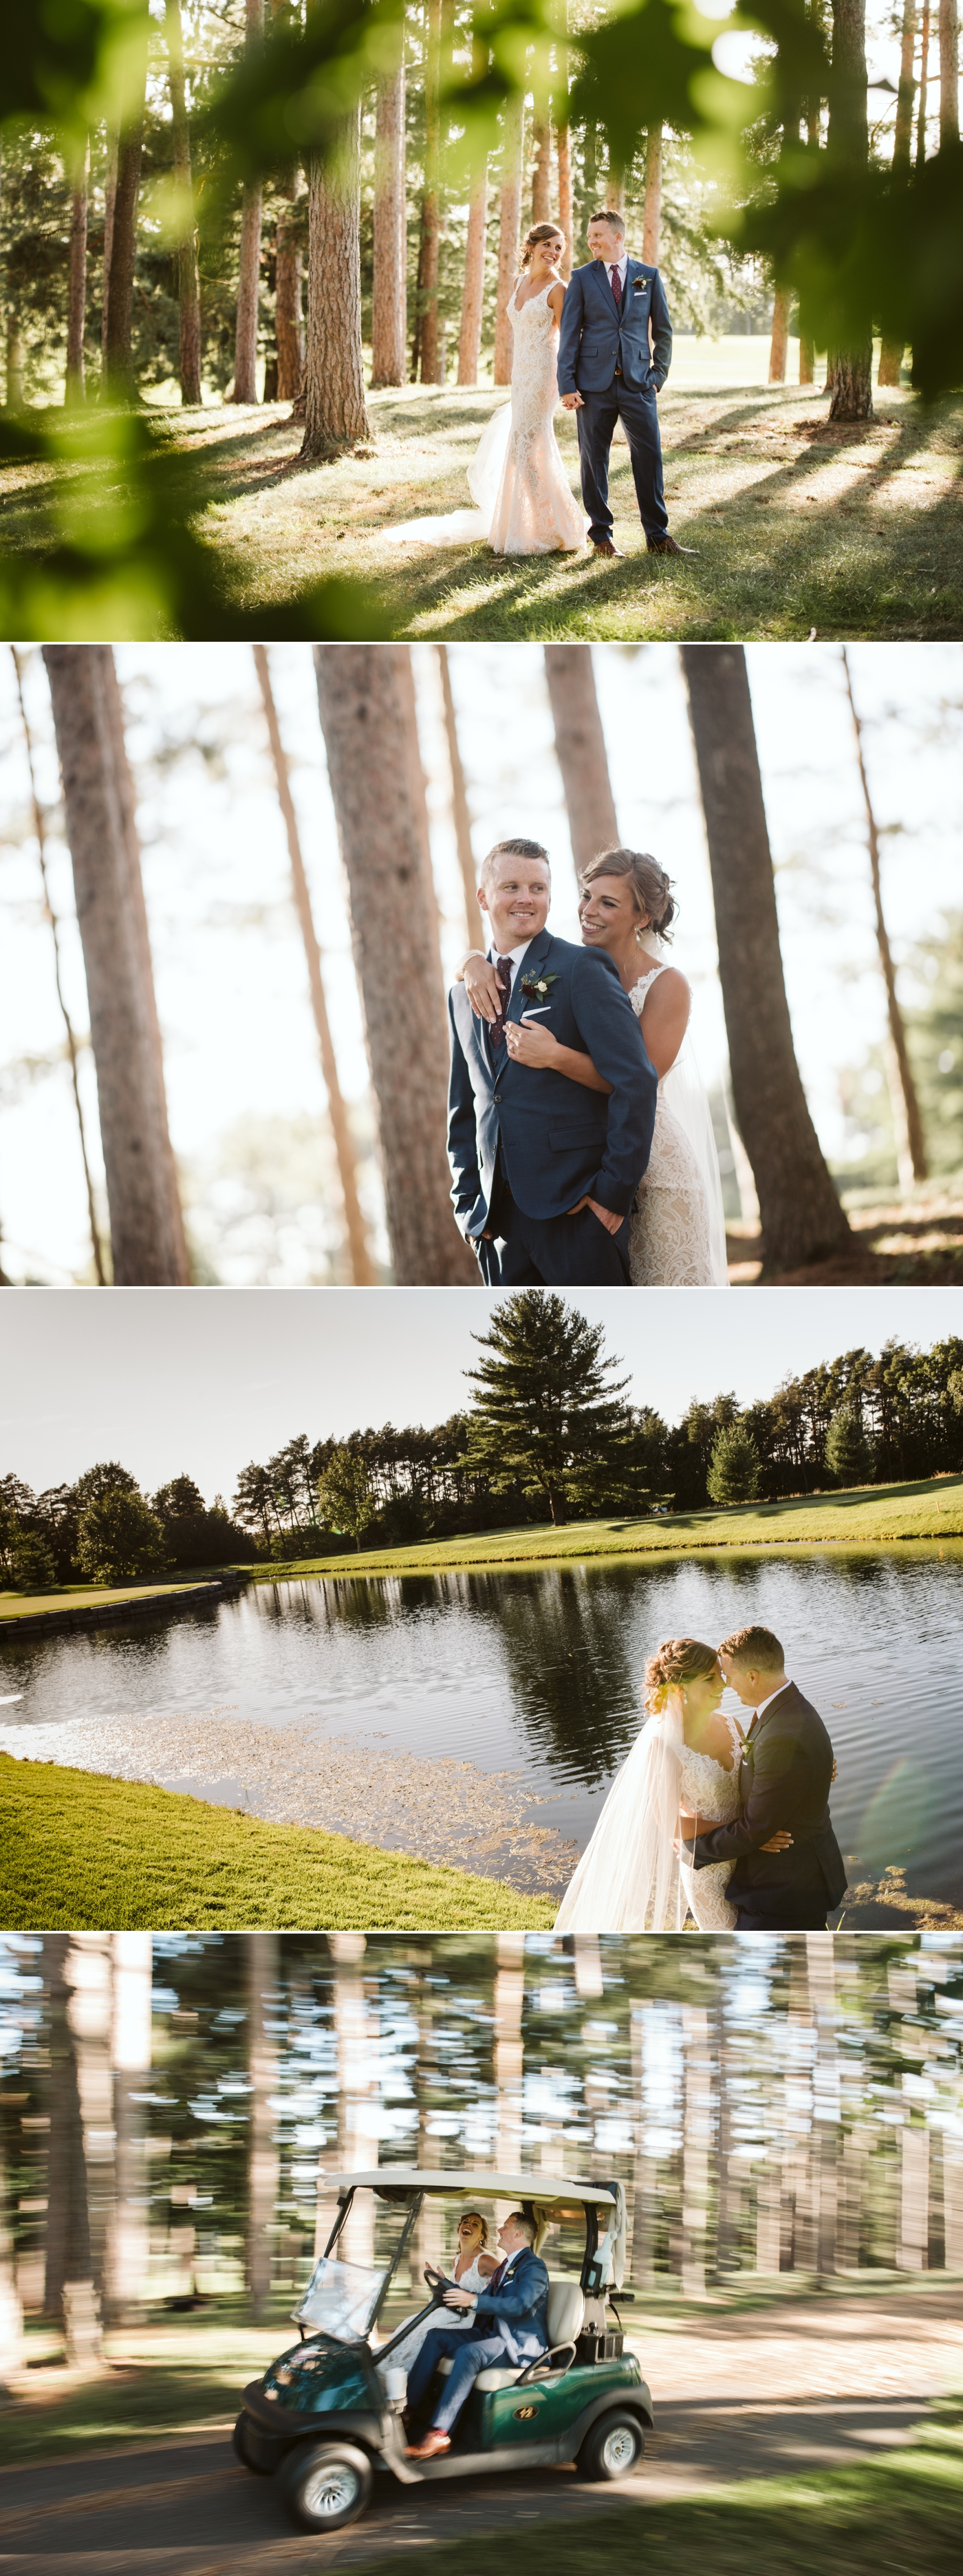 bride and groom portraits at a hunt and golf club wedding in ottawa ontario